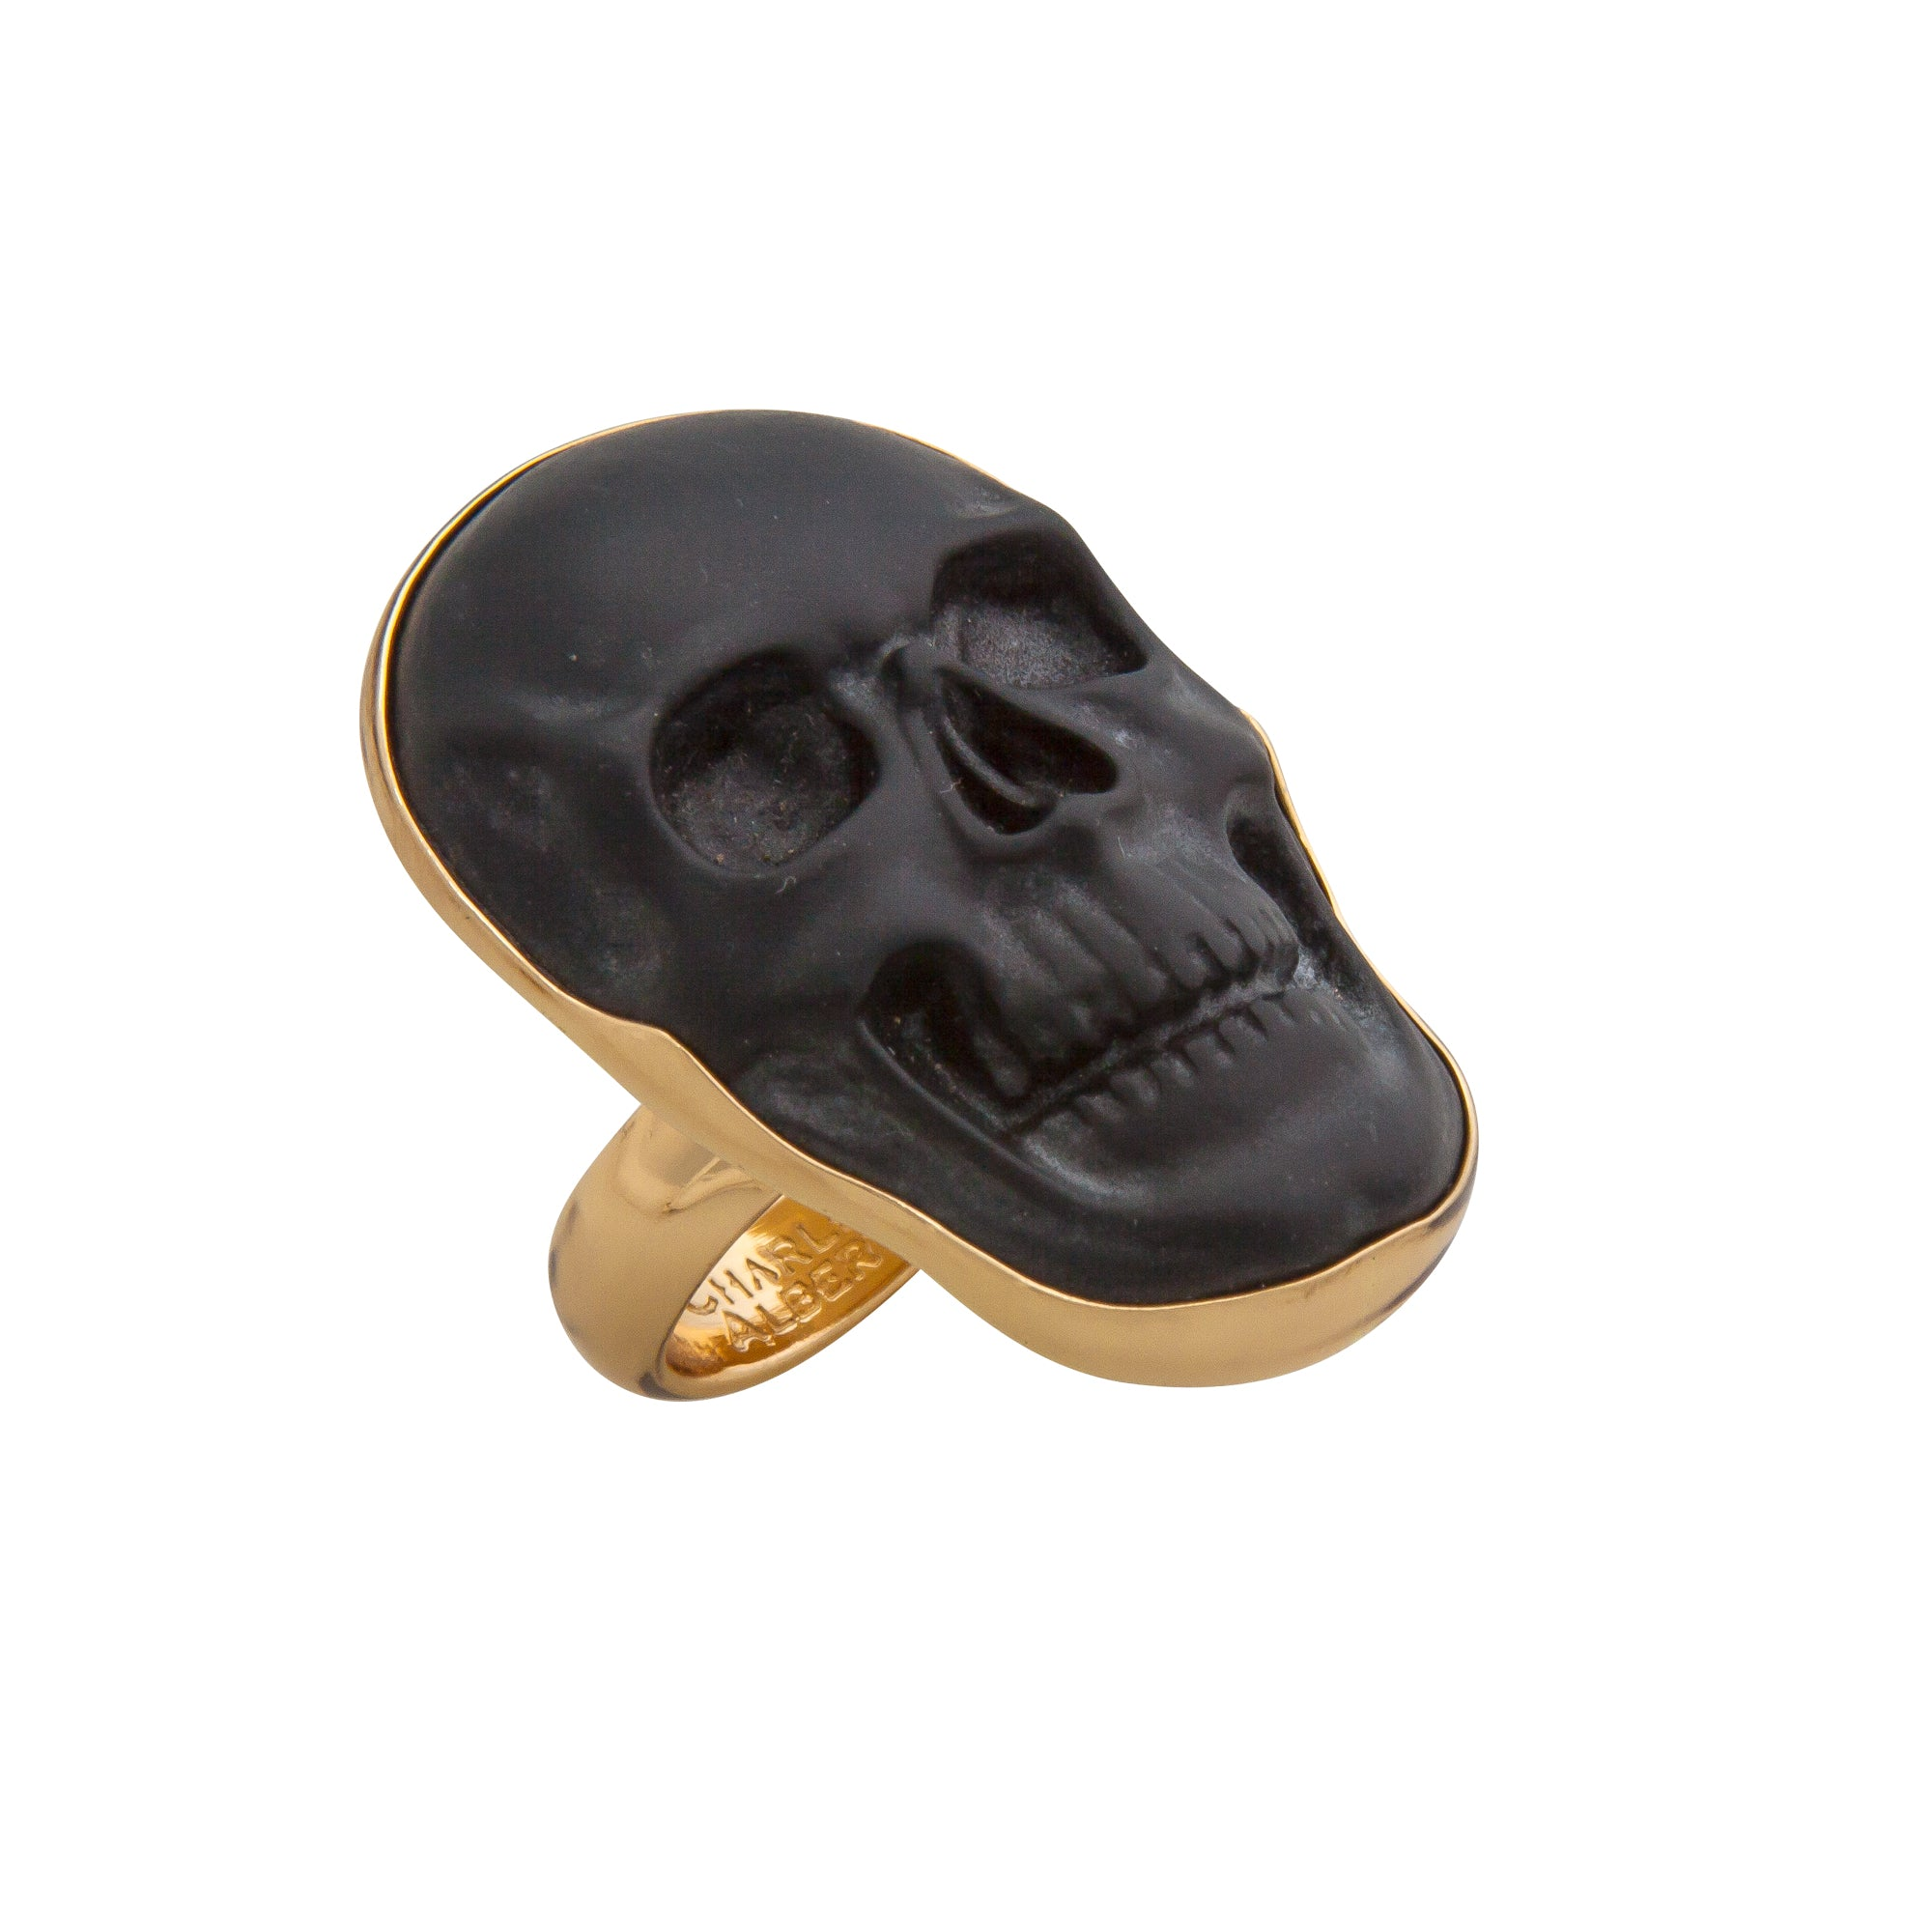 Alchemia Obsidian Skull Adjustable Ring - Medium | Charles Albert Jewelry